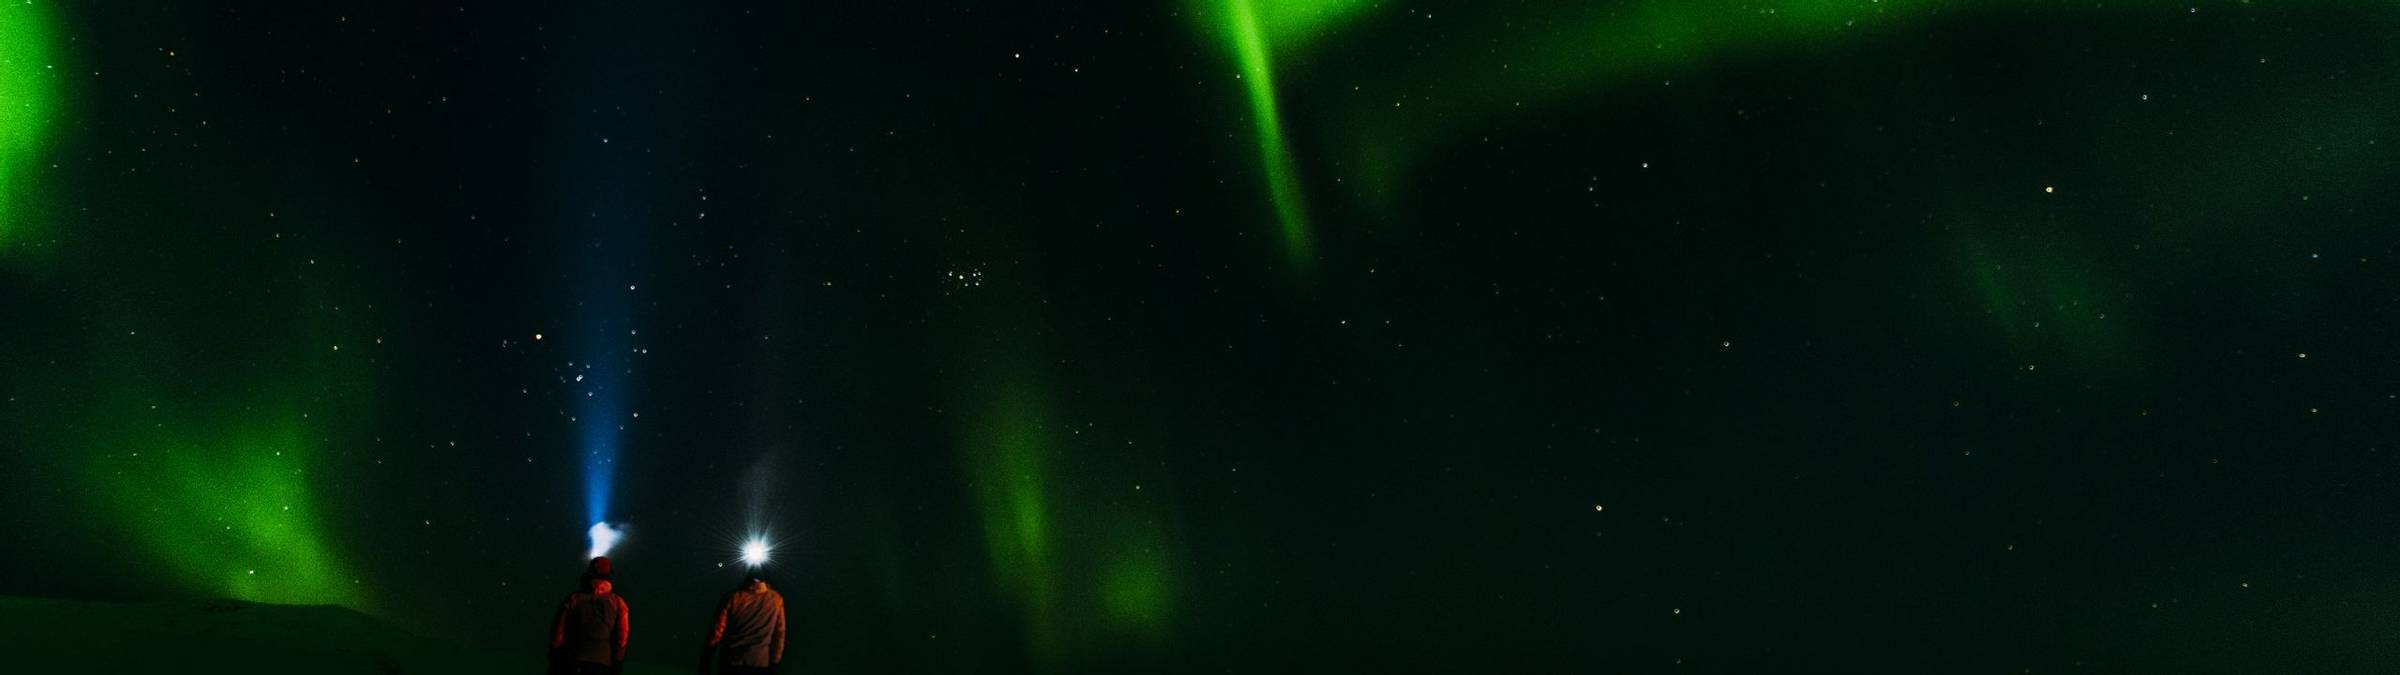 Northern Lights Experience 3 - original (163514) RESIZED Credit Lapland Resorts